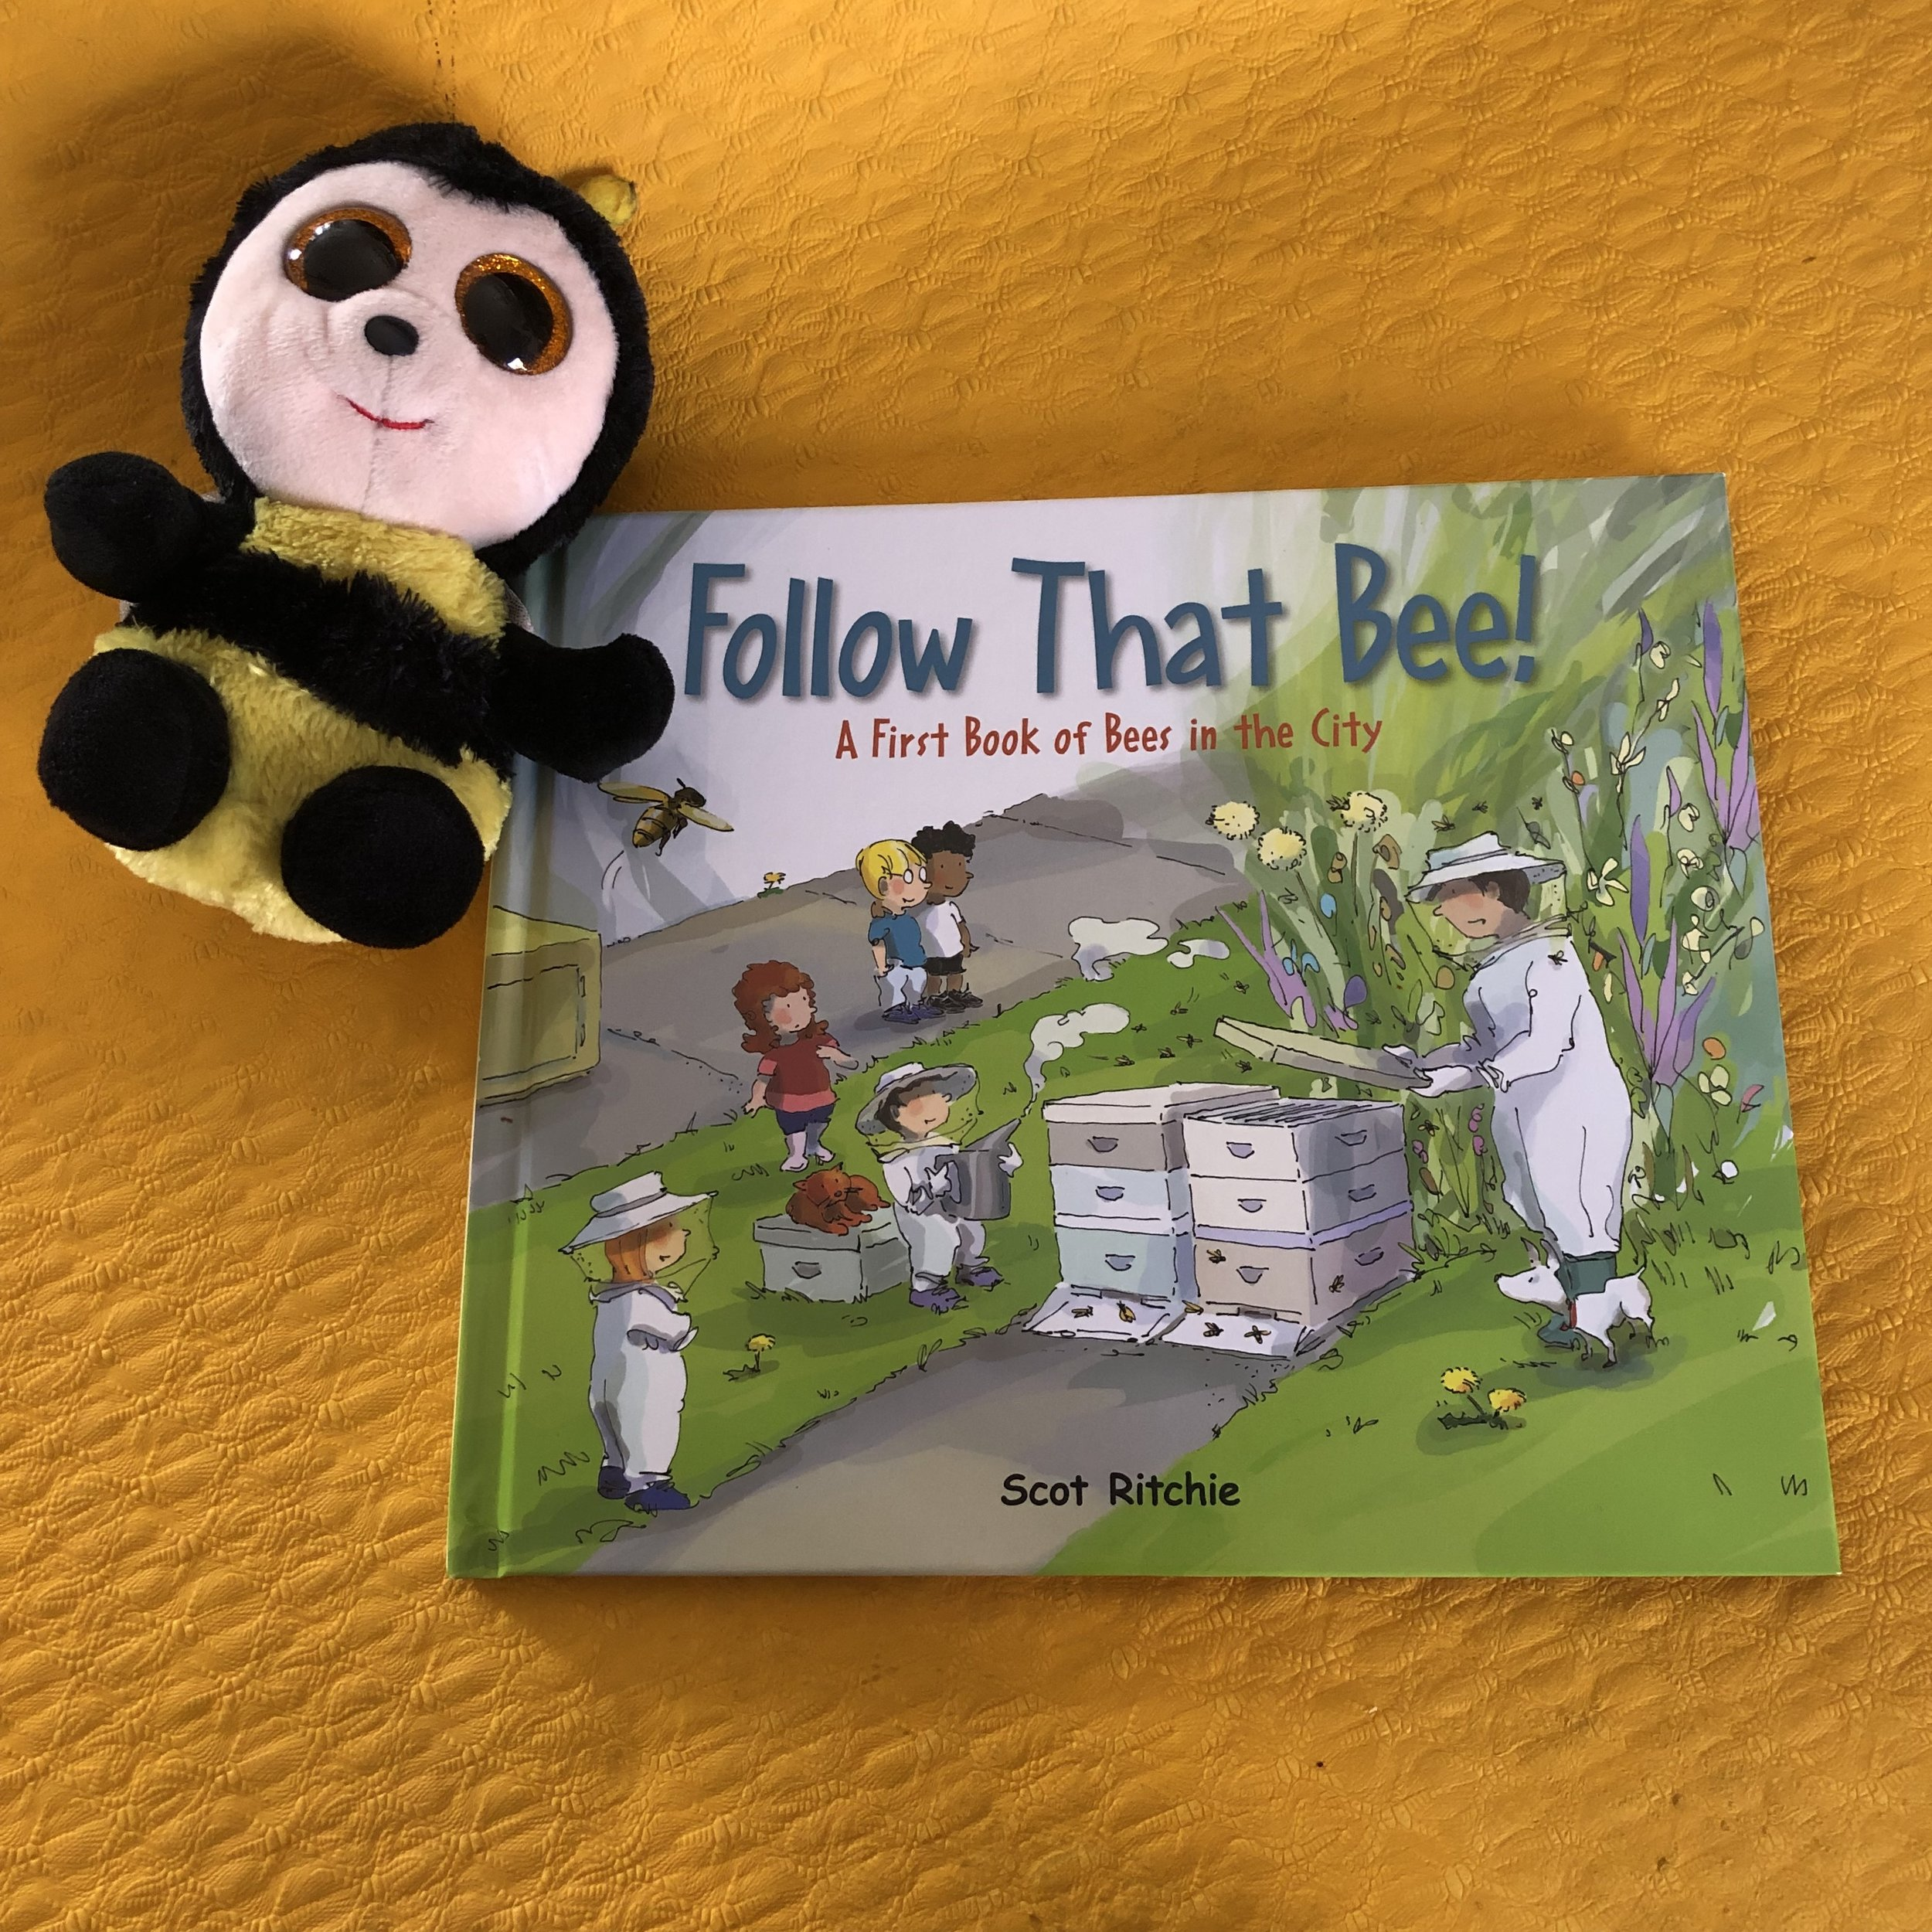 A First Book of Bees in the City Follow That Bee!